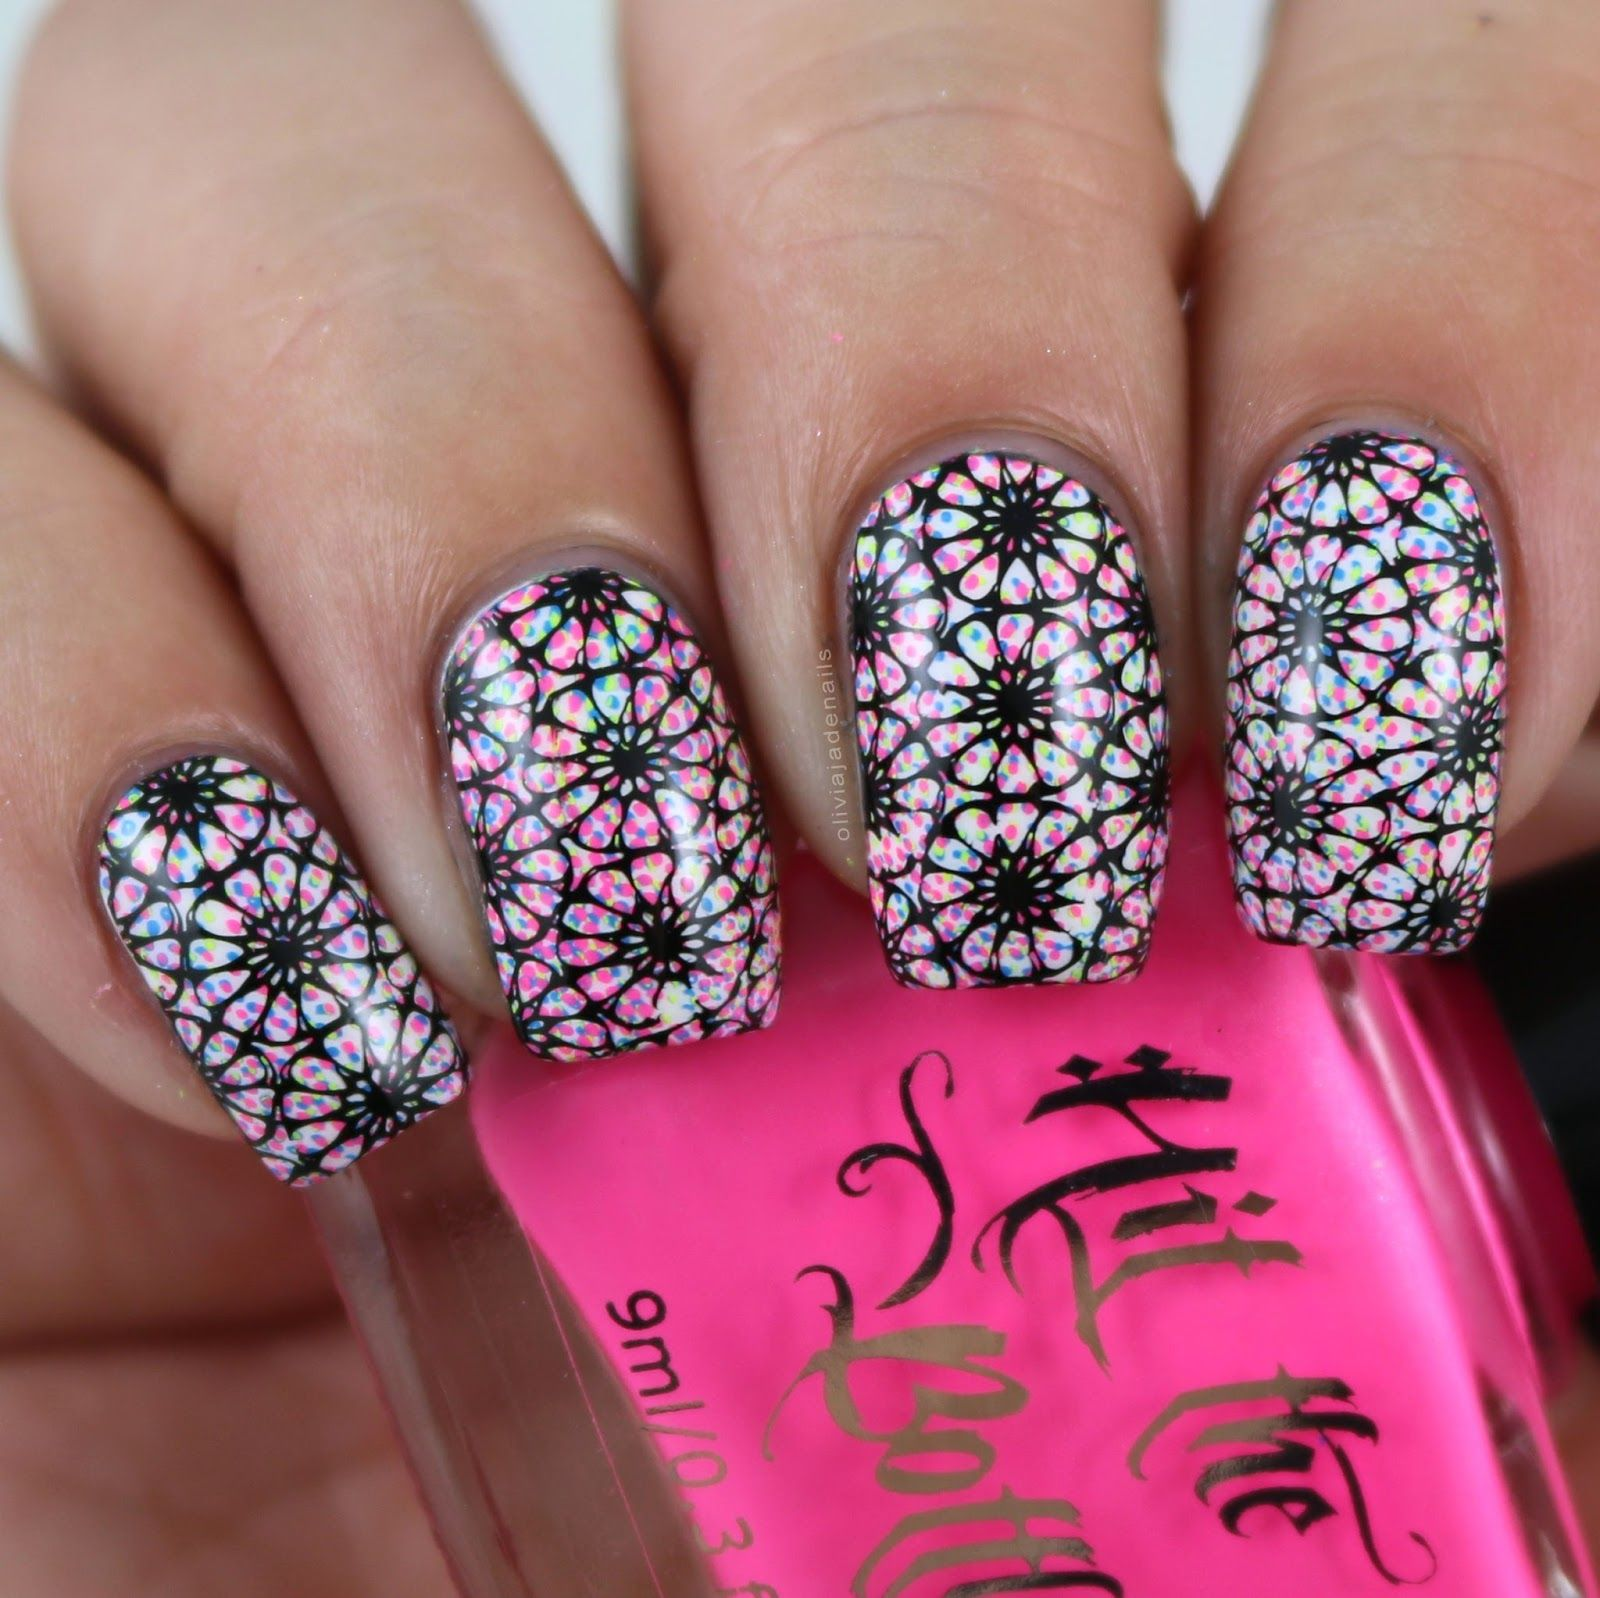 Lina Nail Art Supplies I Foil In Love 01 Stamping Plate - Swatches ...